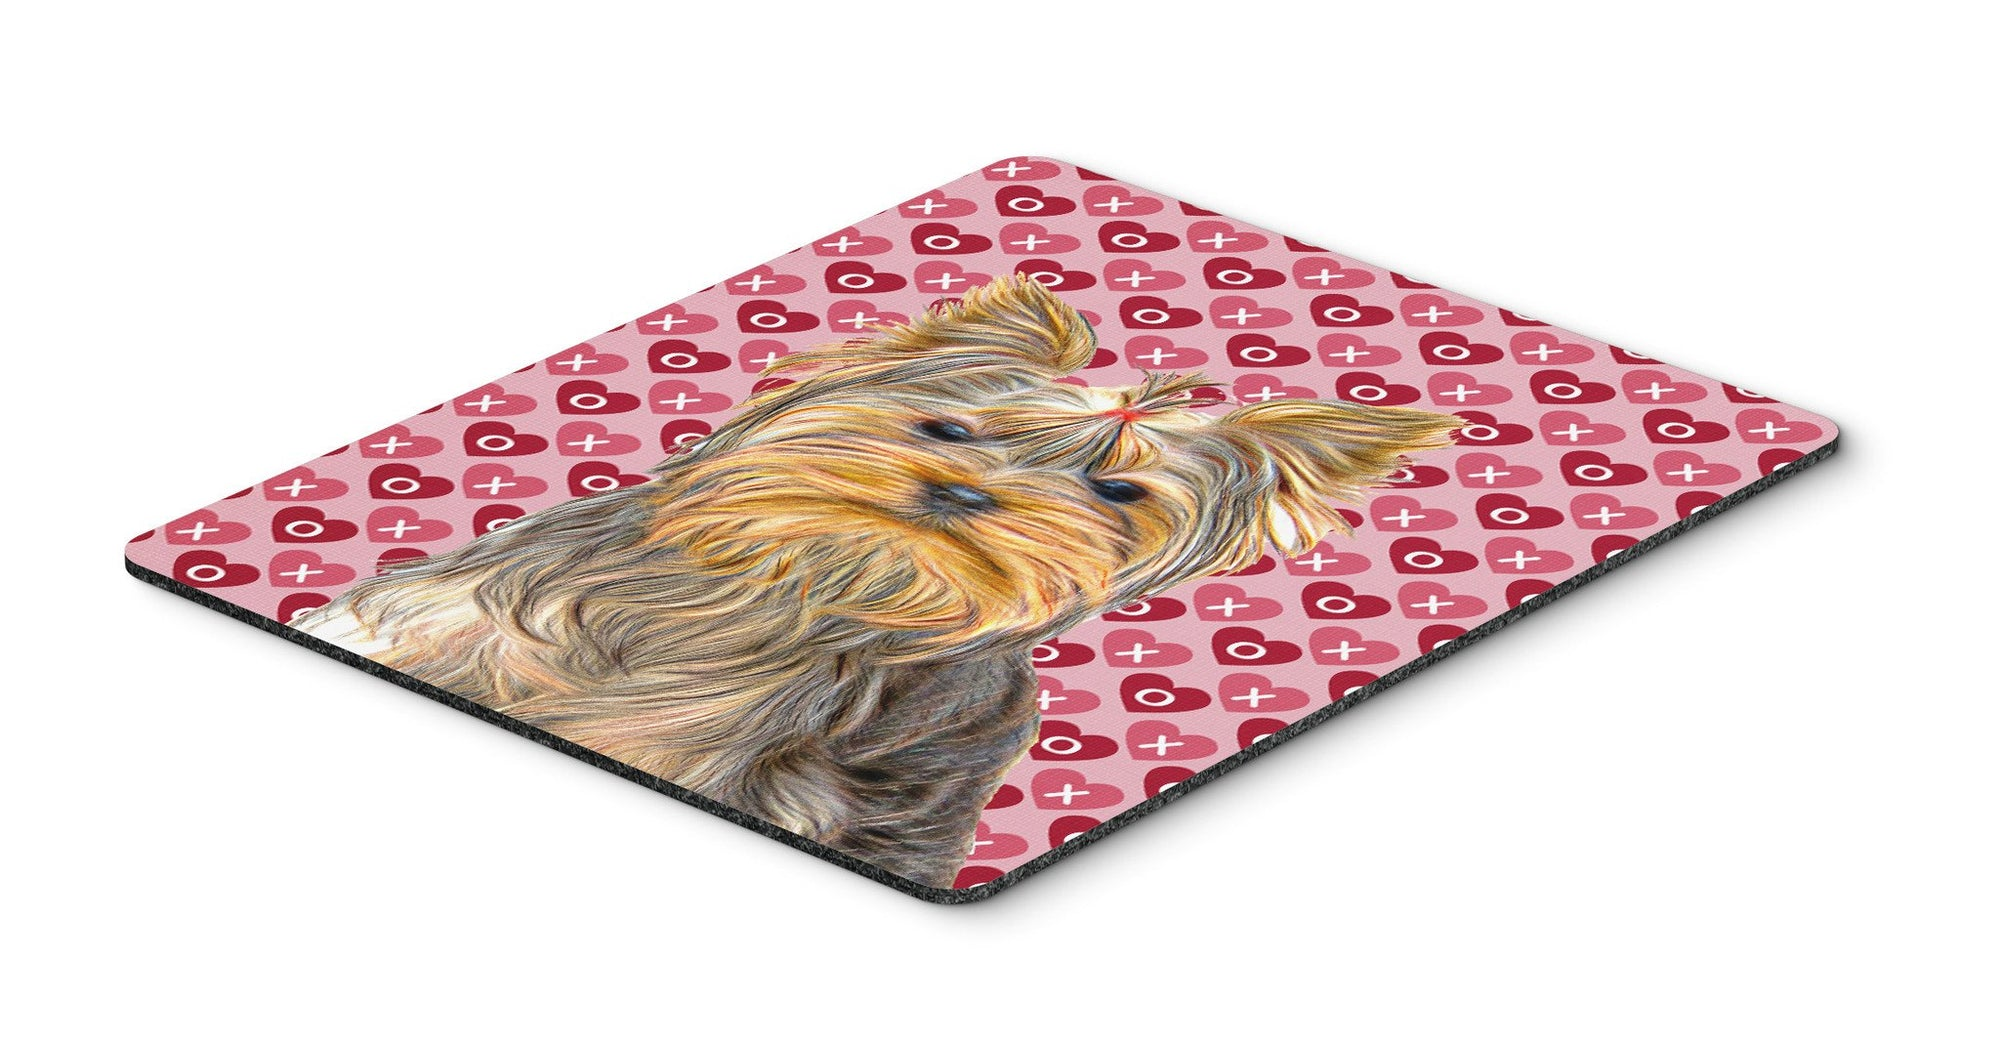 Hearts Love and Valentine's Day Yorkie / Yorkshire Terrier Mouse Pad, Hot Pad or Trivet KJ1191MP by Caroline's Treasures